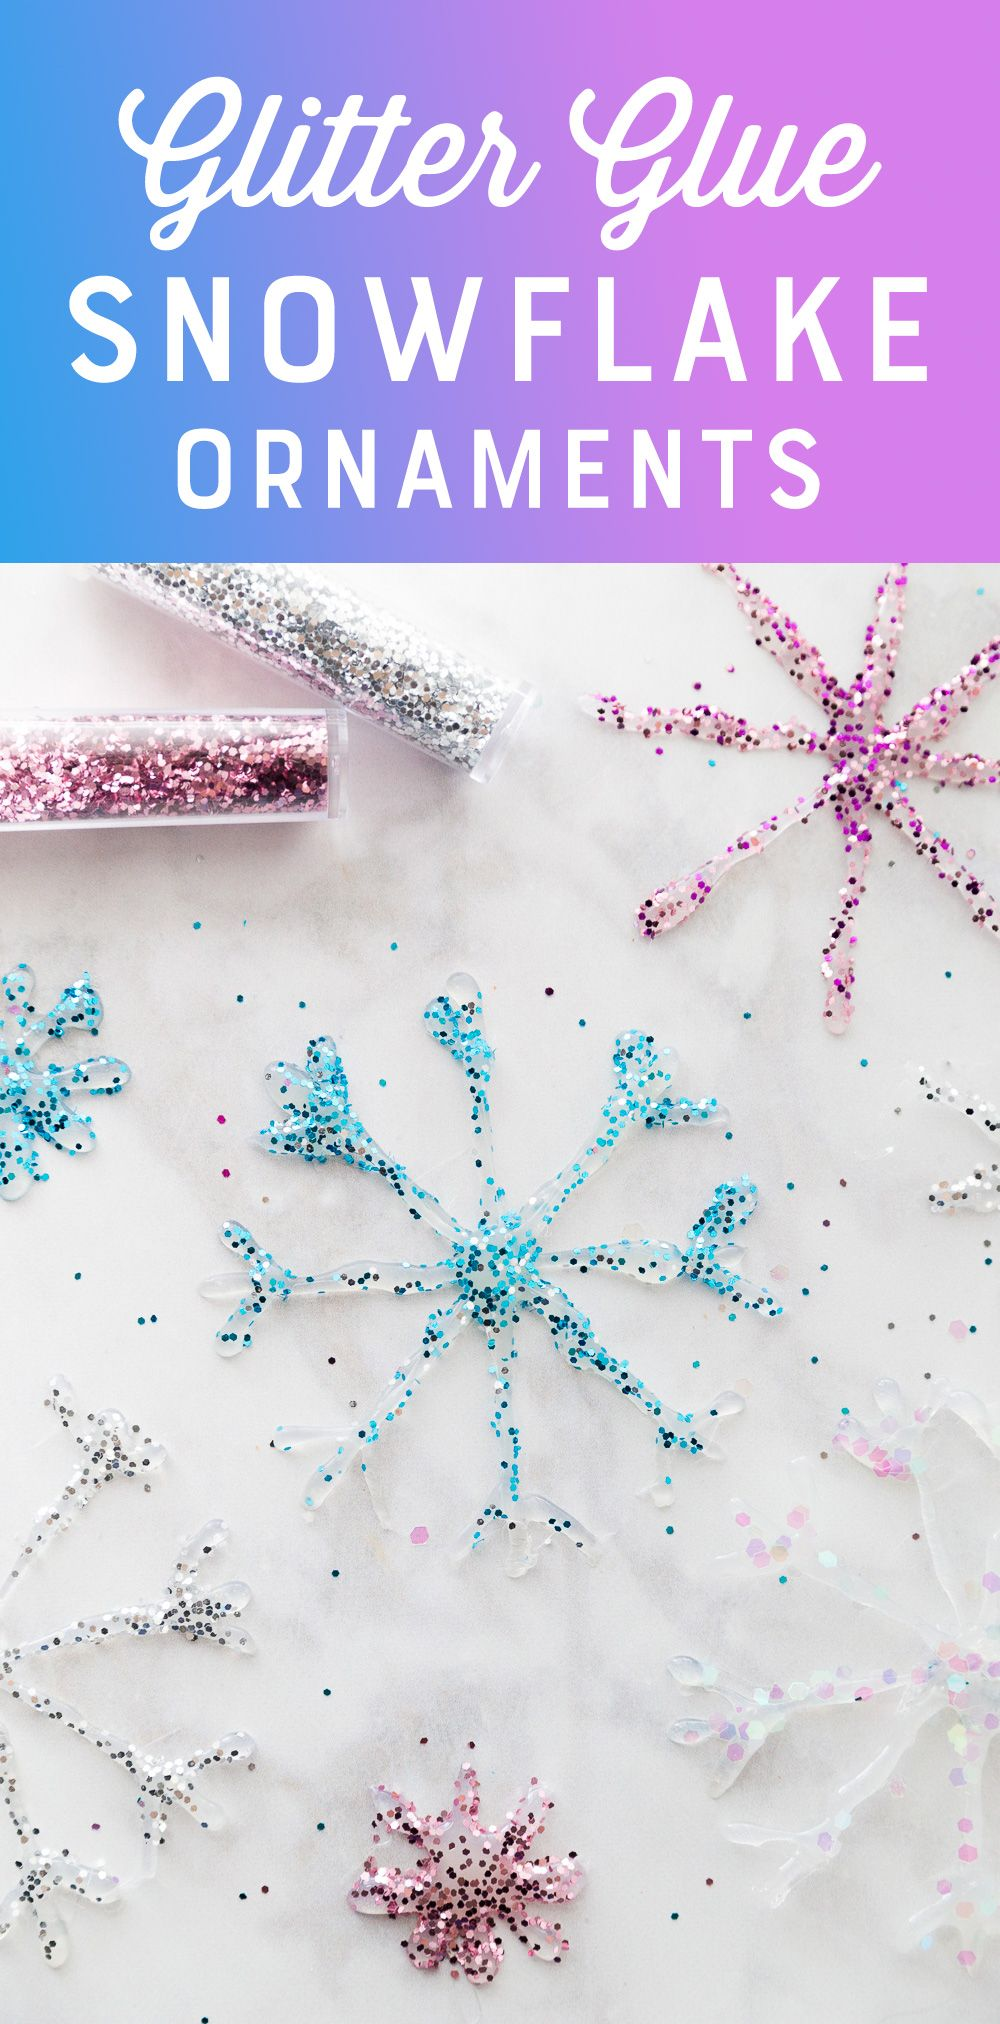 Diy Glitter Glue Snowflake Ornaments Hot Glue Window Clings Recipe Snowflake Ornaments Diy Christmas Snowflakes Crafts Diy Christmas Snowflakes